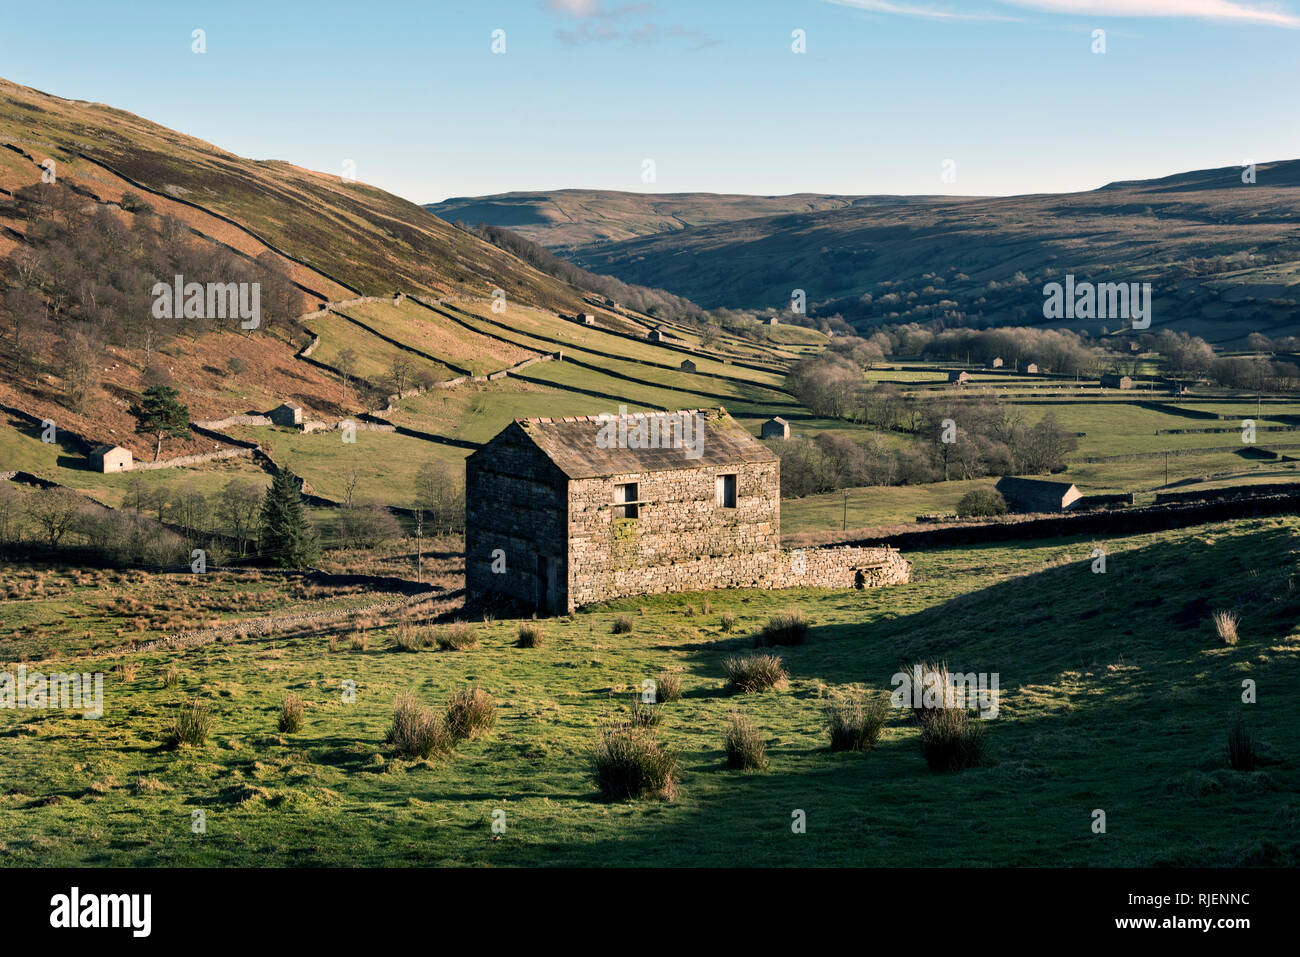 Traditional Yorkshire Dales barns near Thwaite, Swaledale, Yorkshire Dales National Park - Stock Image